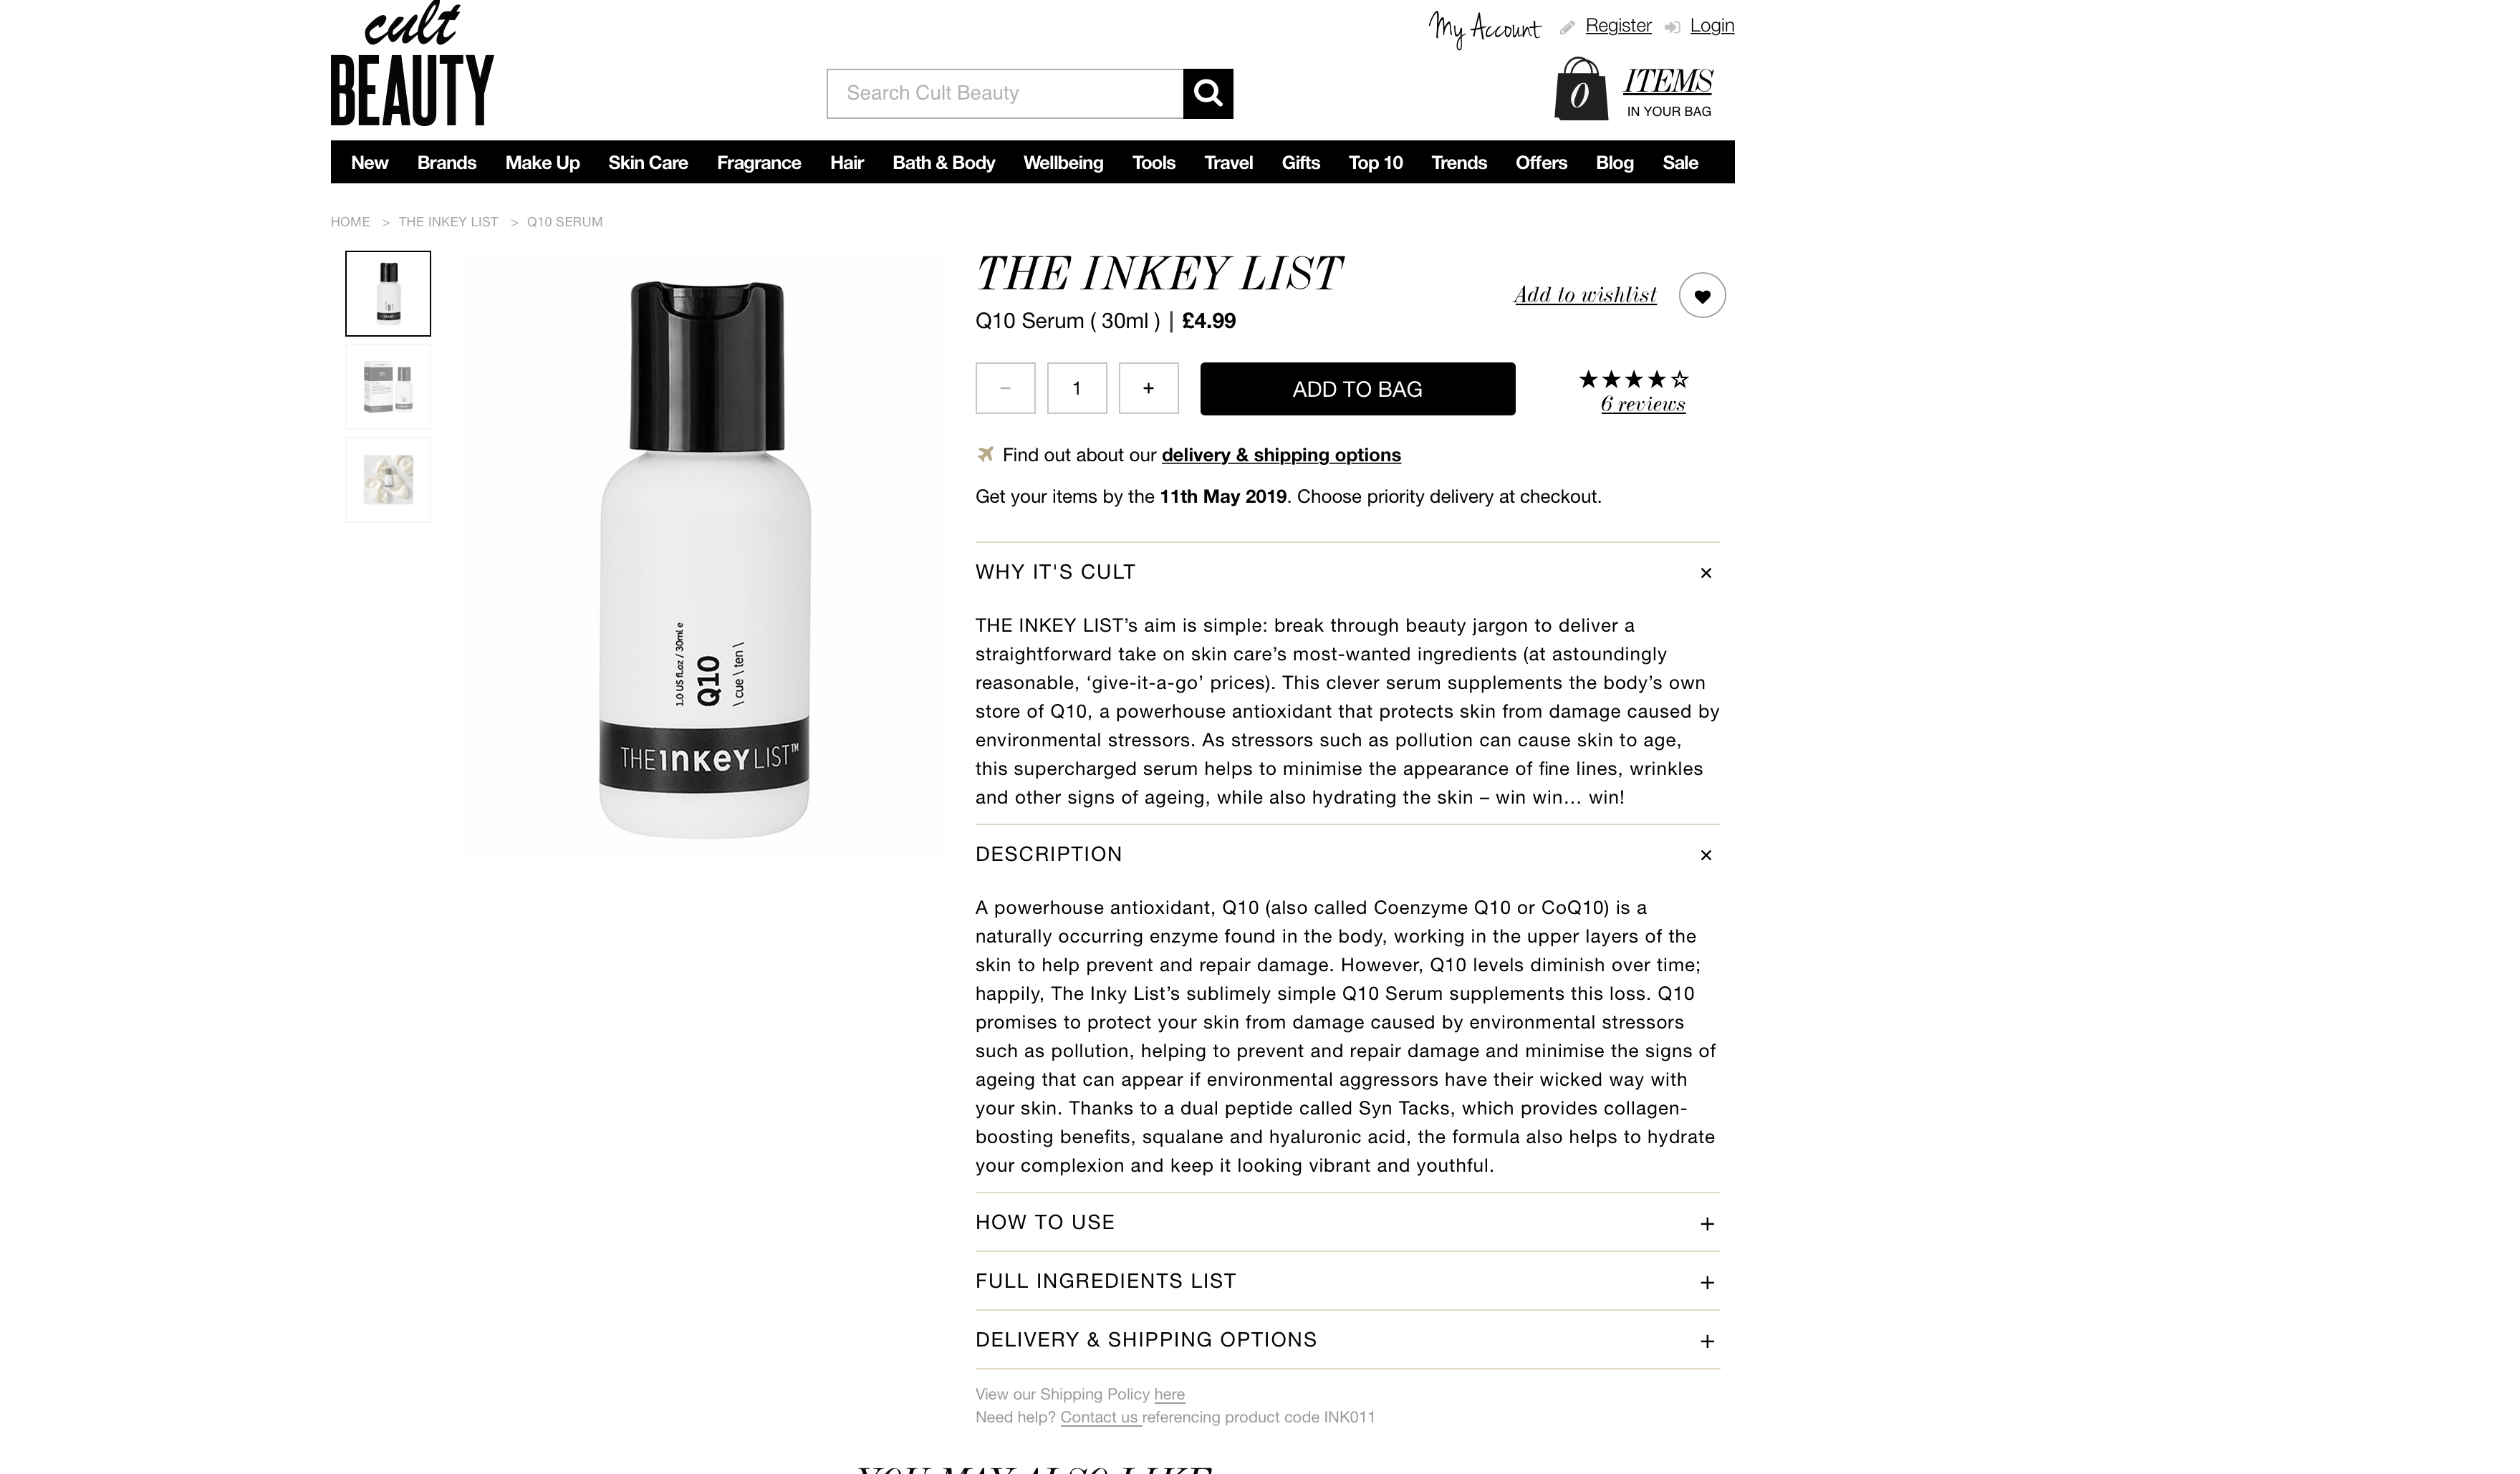 The Inkey List Q 10 Serum